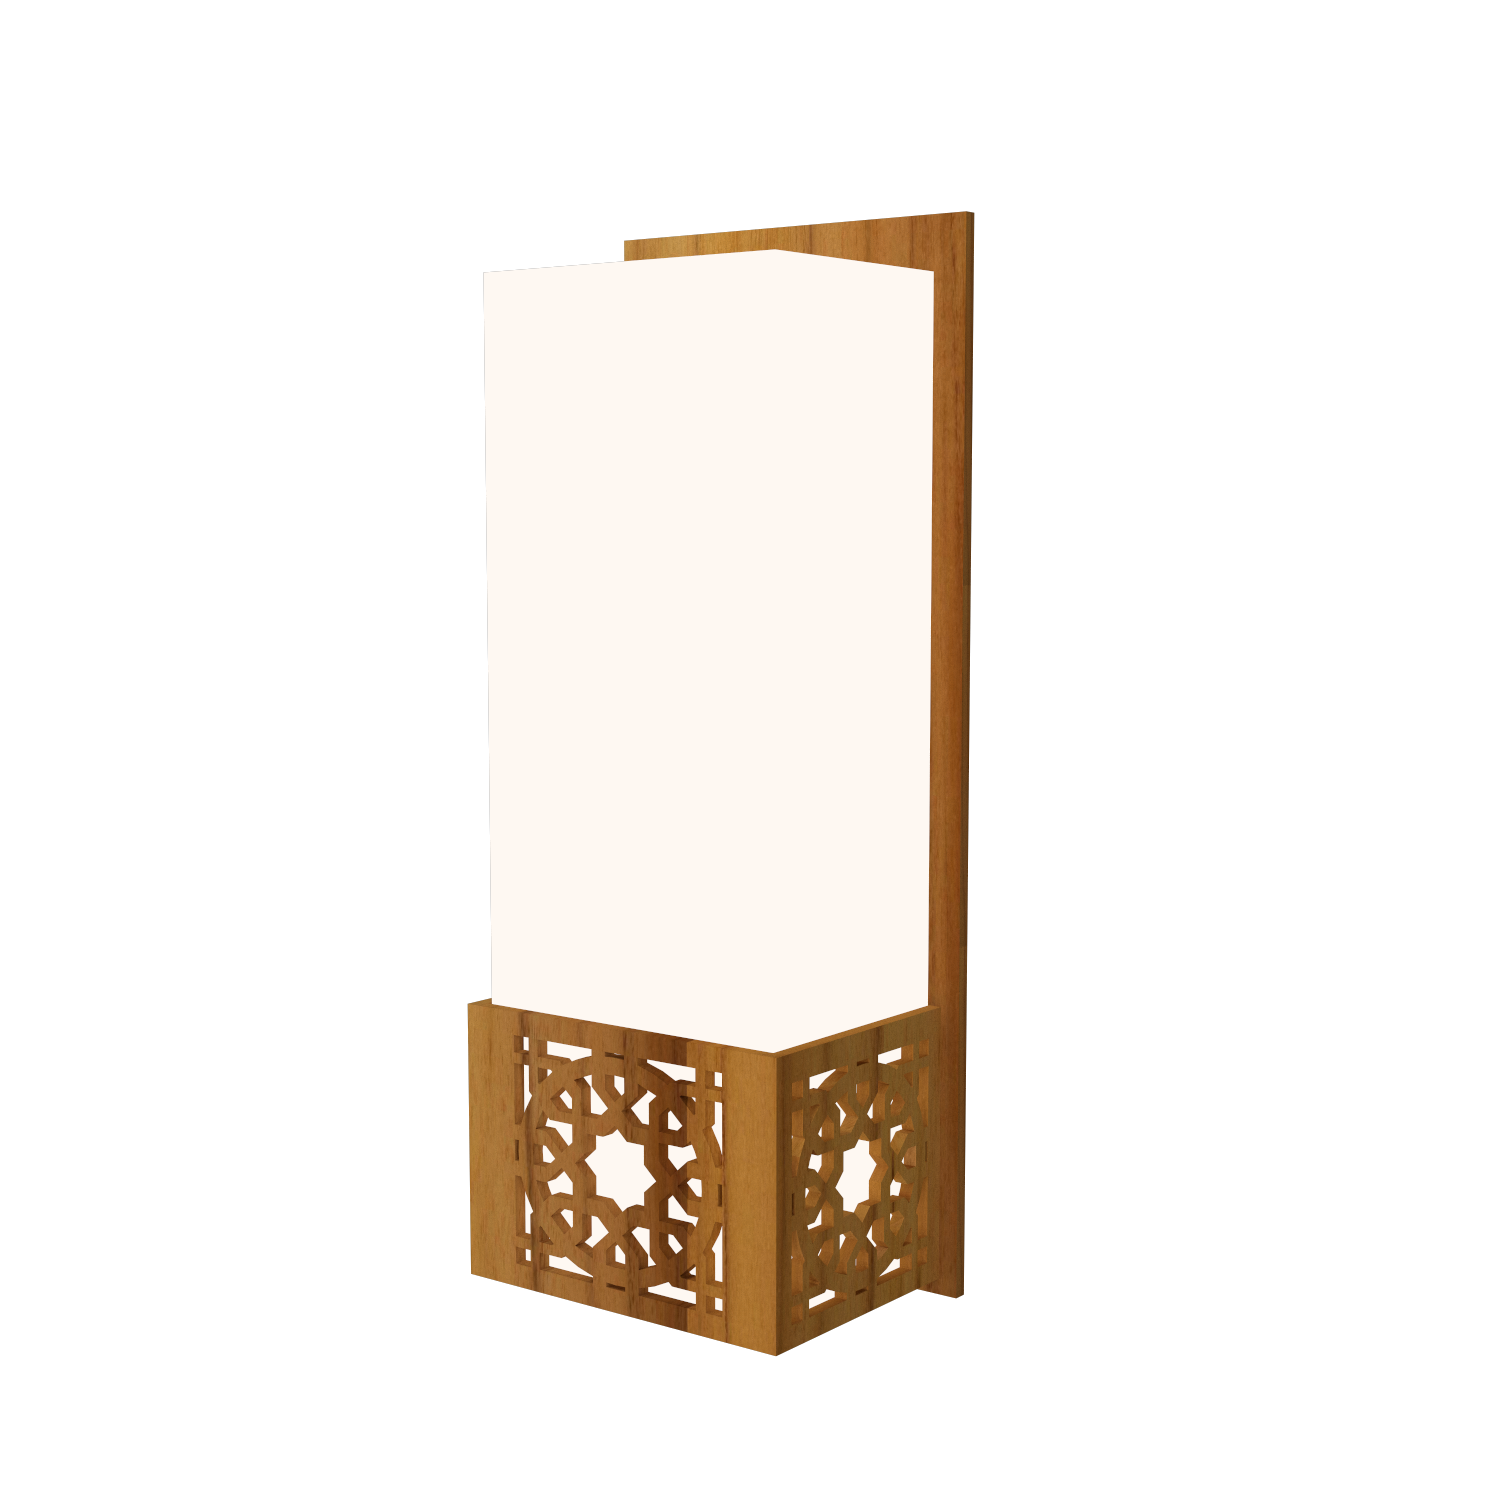 Wall Lamp Accord Patterns 4052 - Patterns Line Accord Lighting | 12. Teak